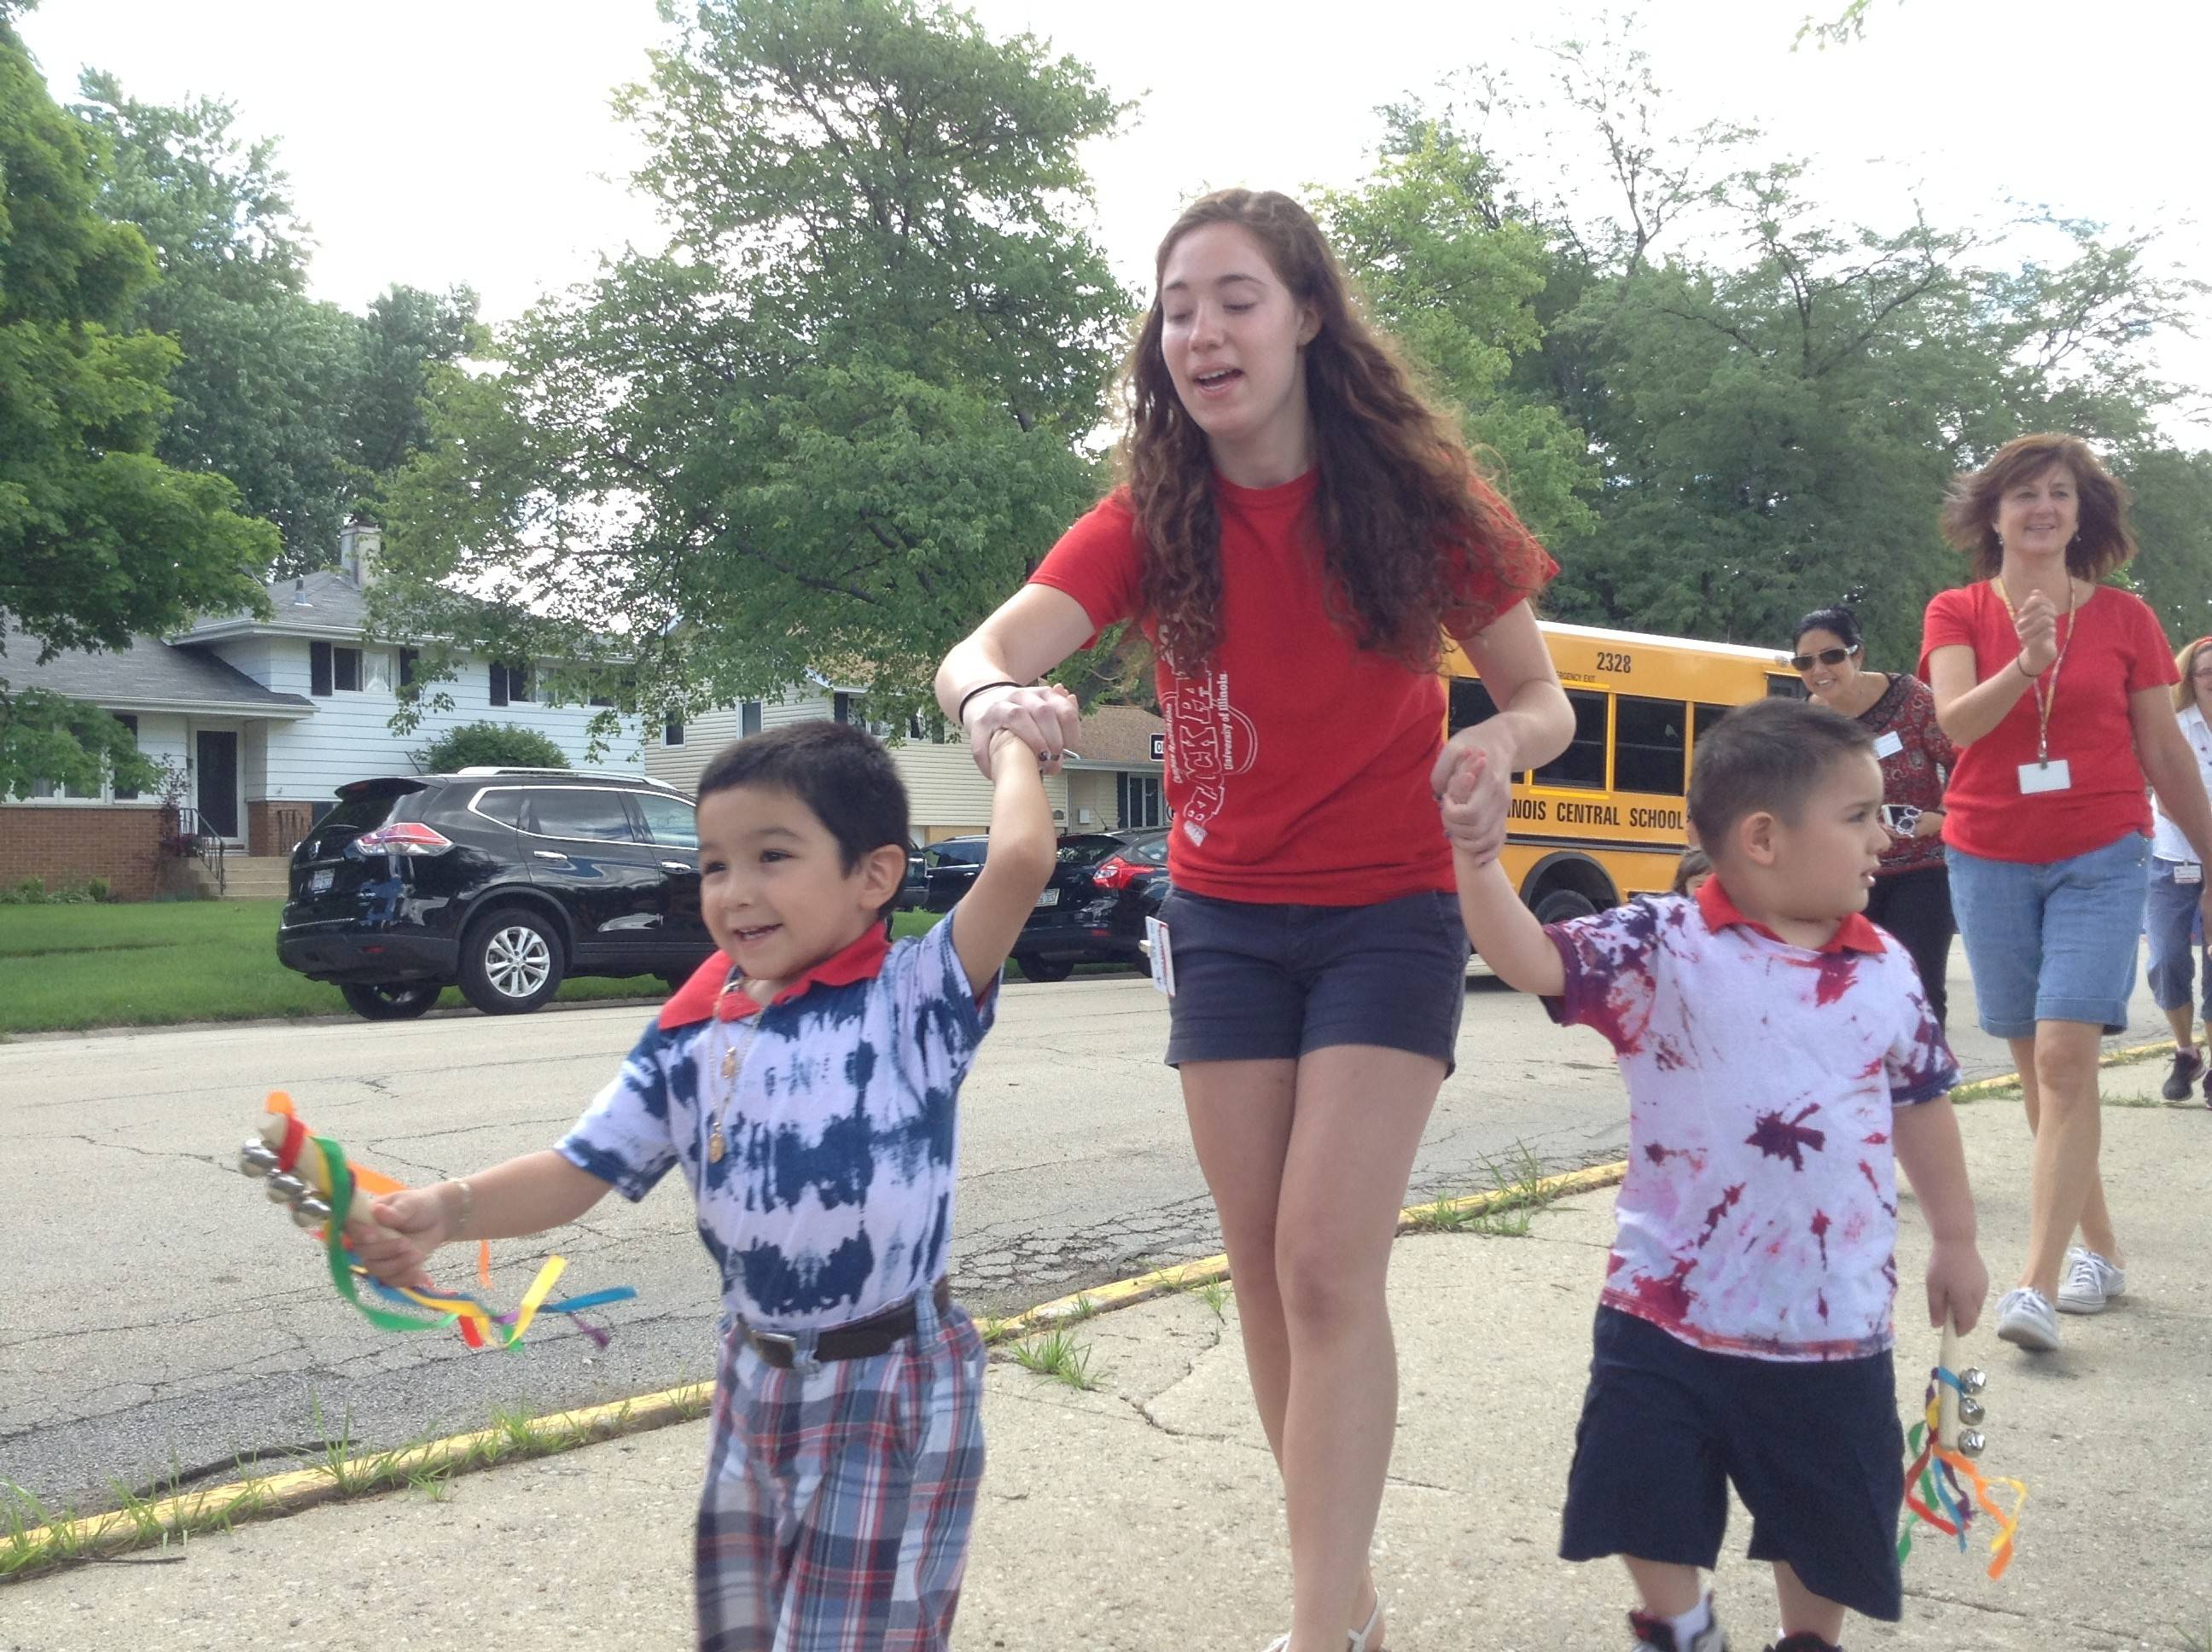 Students and teachers at Jefferson Early Childhood Center in Wheaton took part in an early 4th of July parade Thursday.